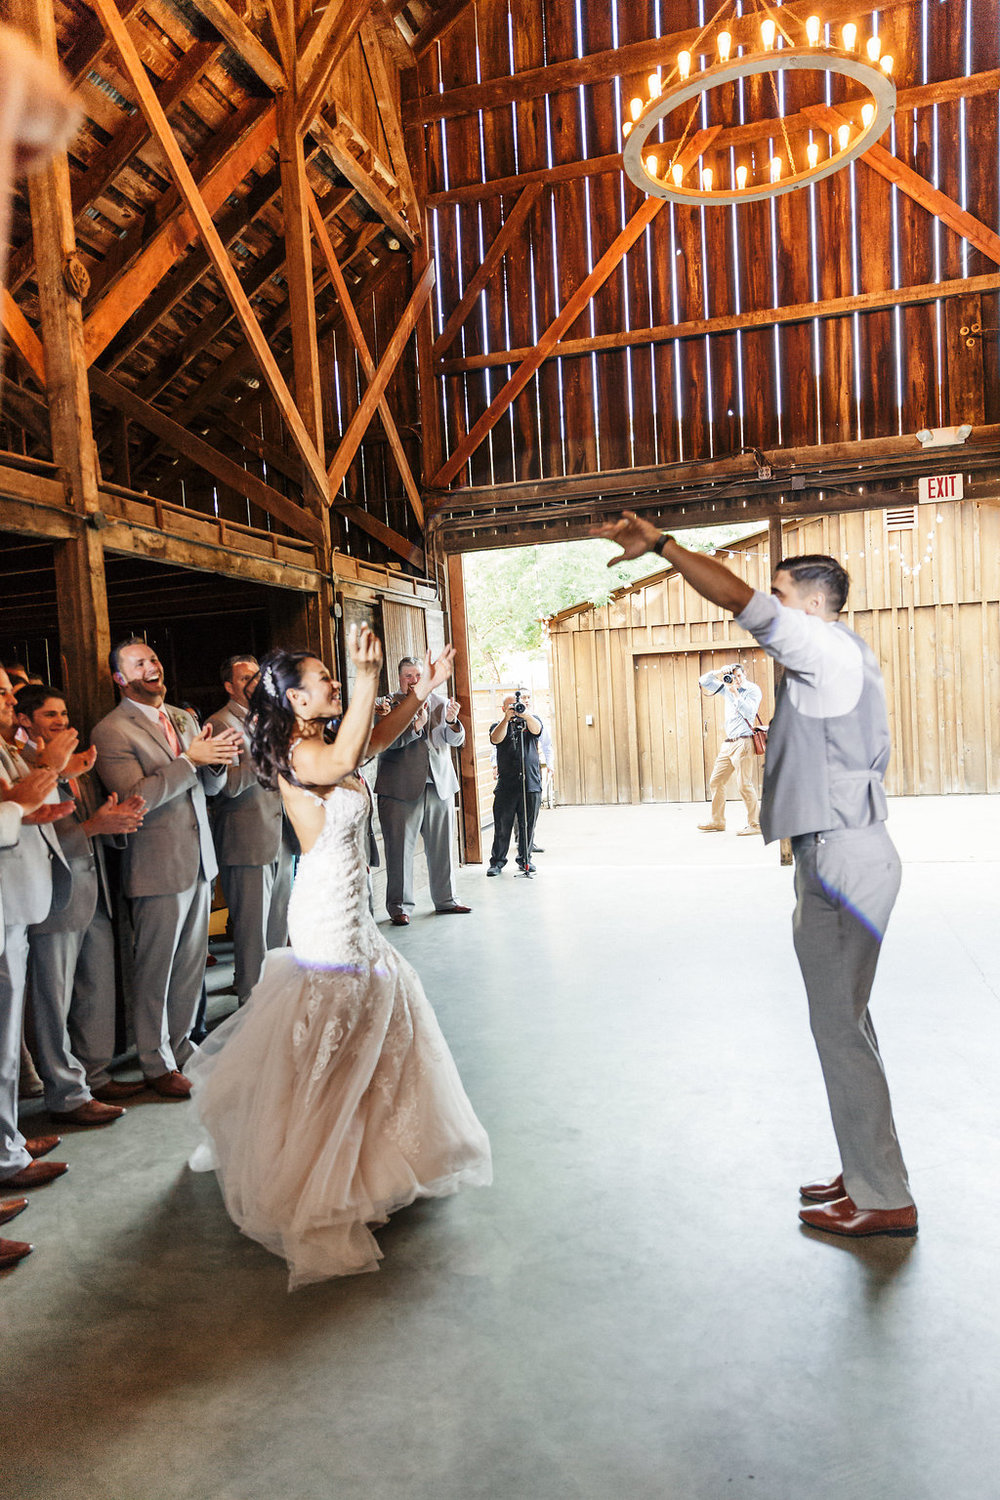 rus-farm-grand-entrance-barn-wedding.jpg